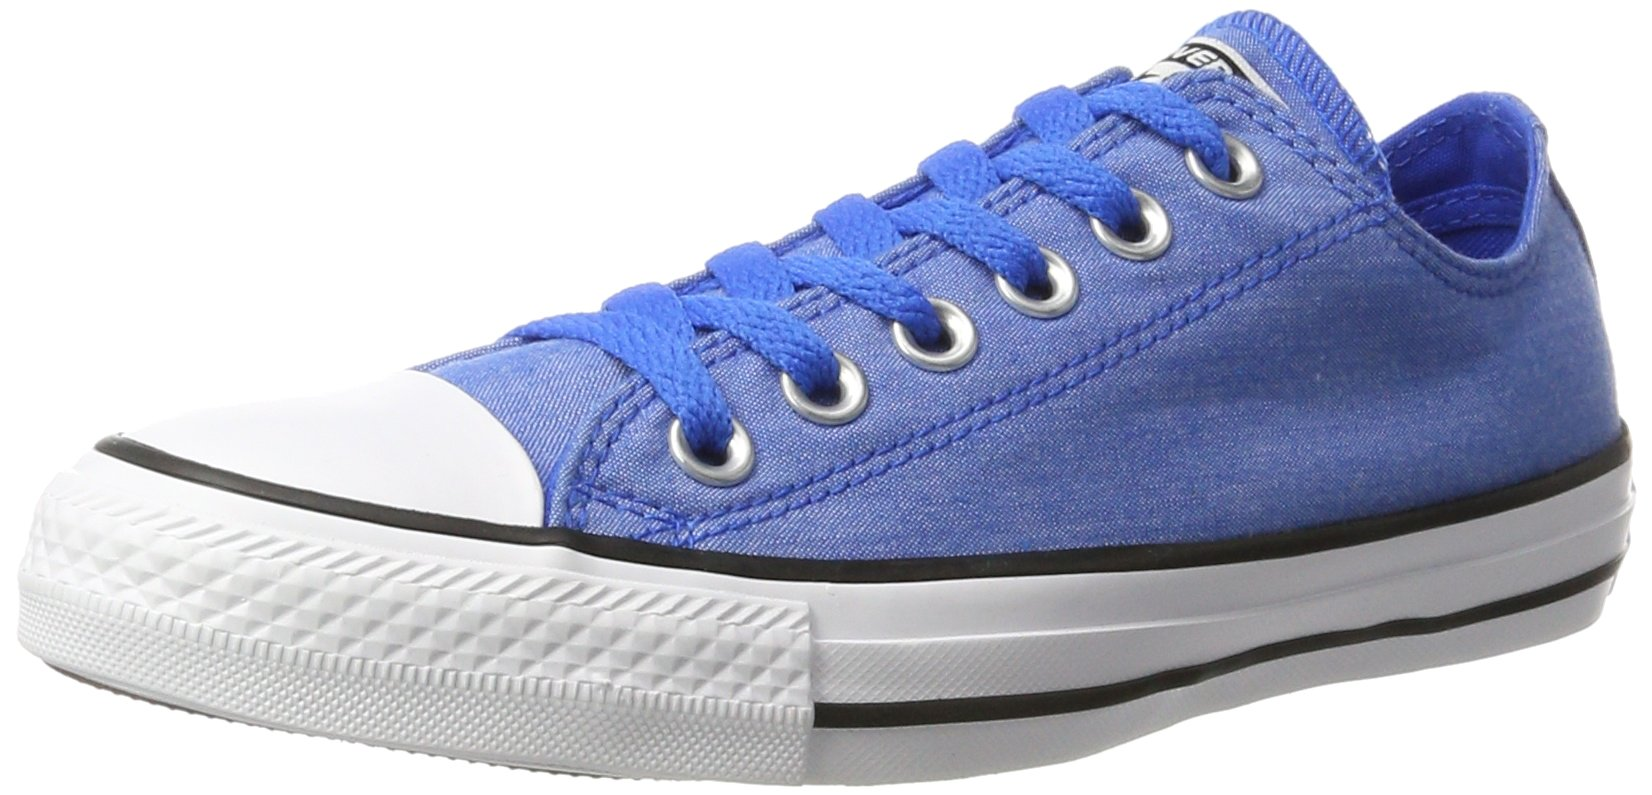 Converse Mens Chuck Taylor Oxford Blue Cotton Trainers 10 US